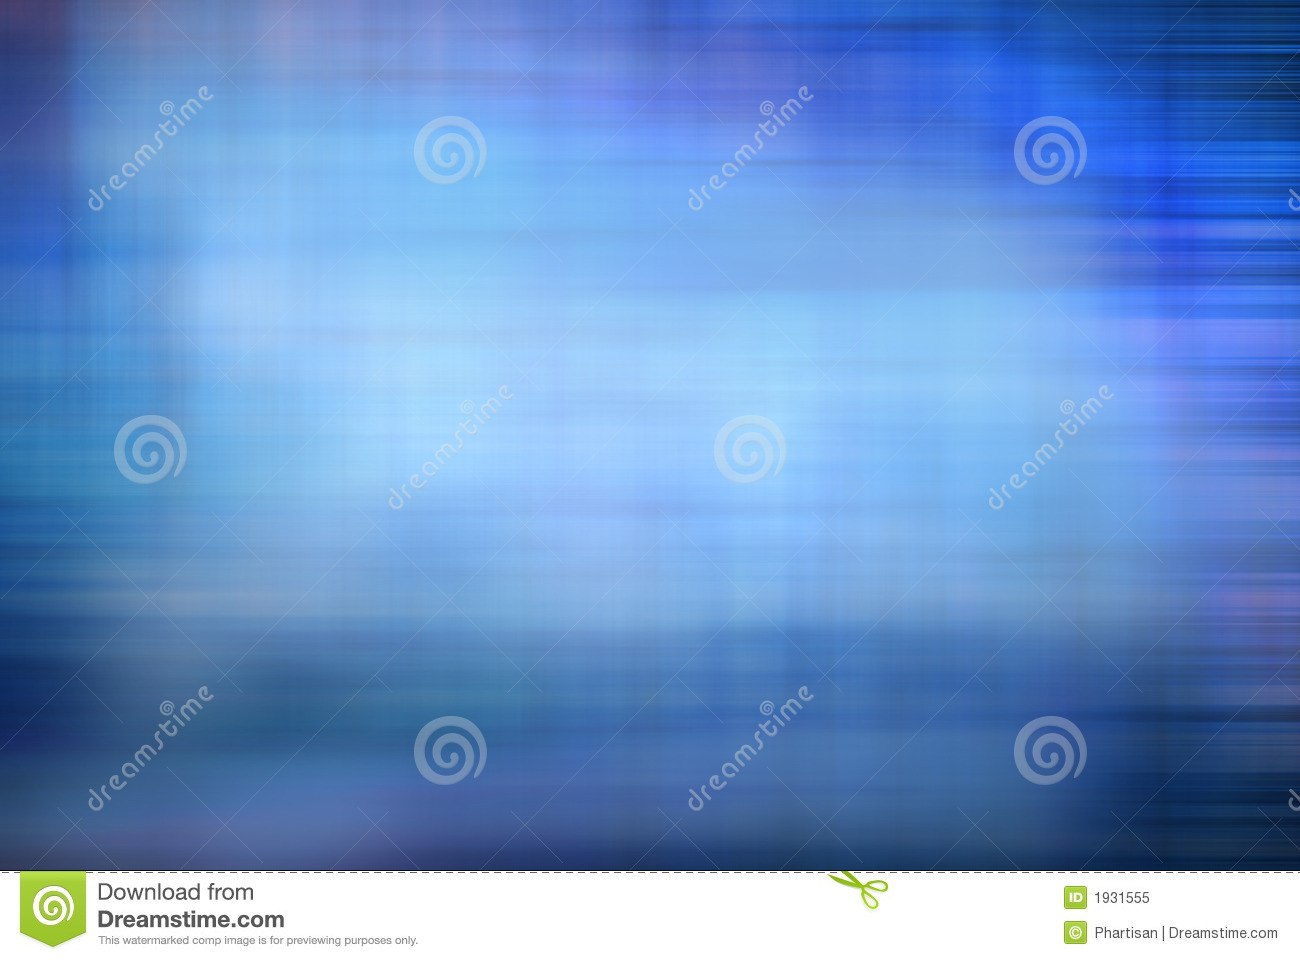 Blue and White Multi Layered Background